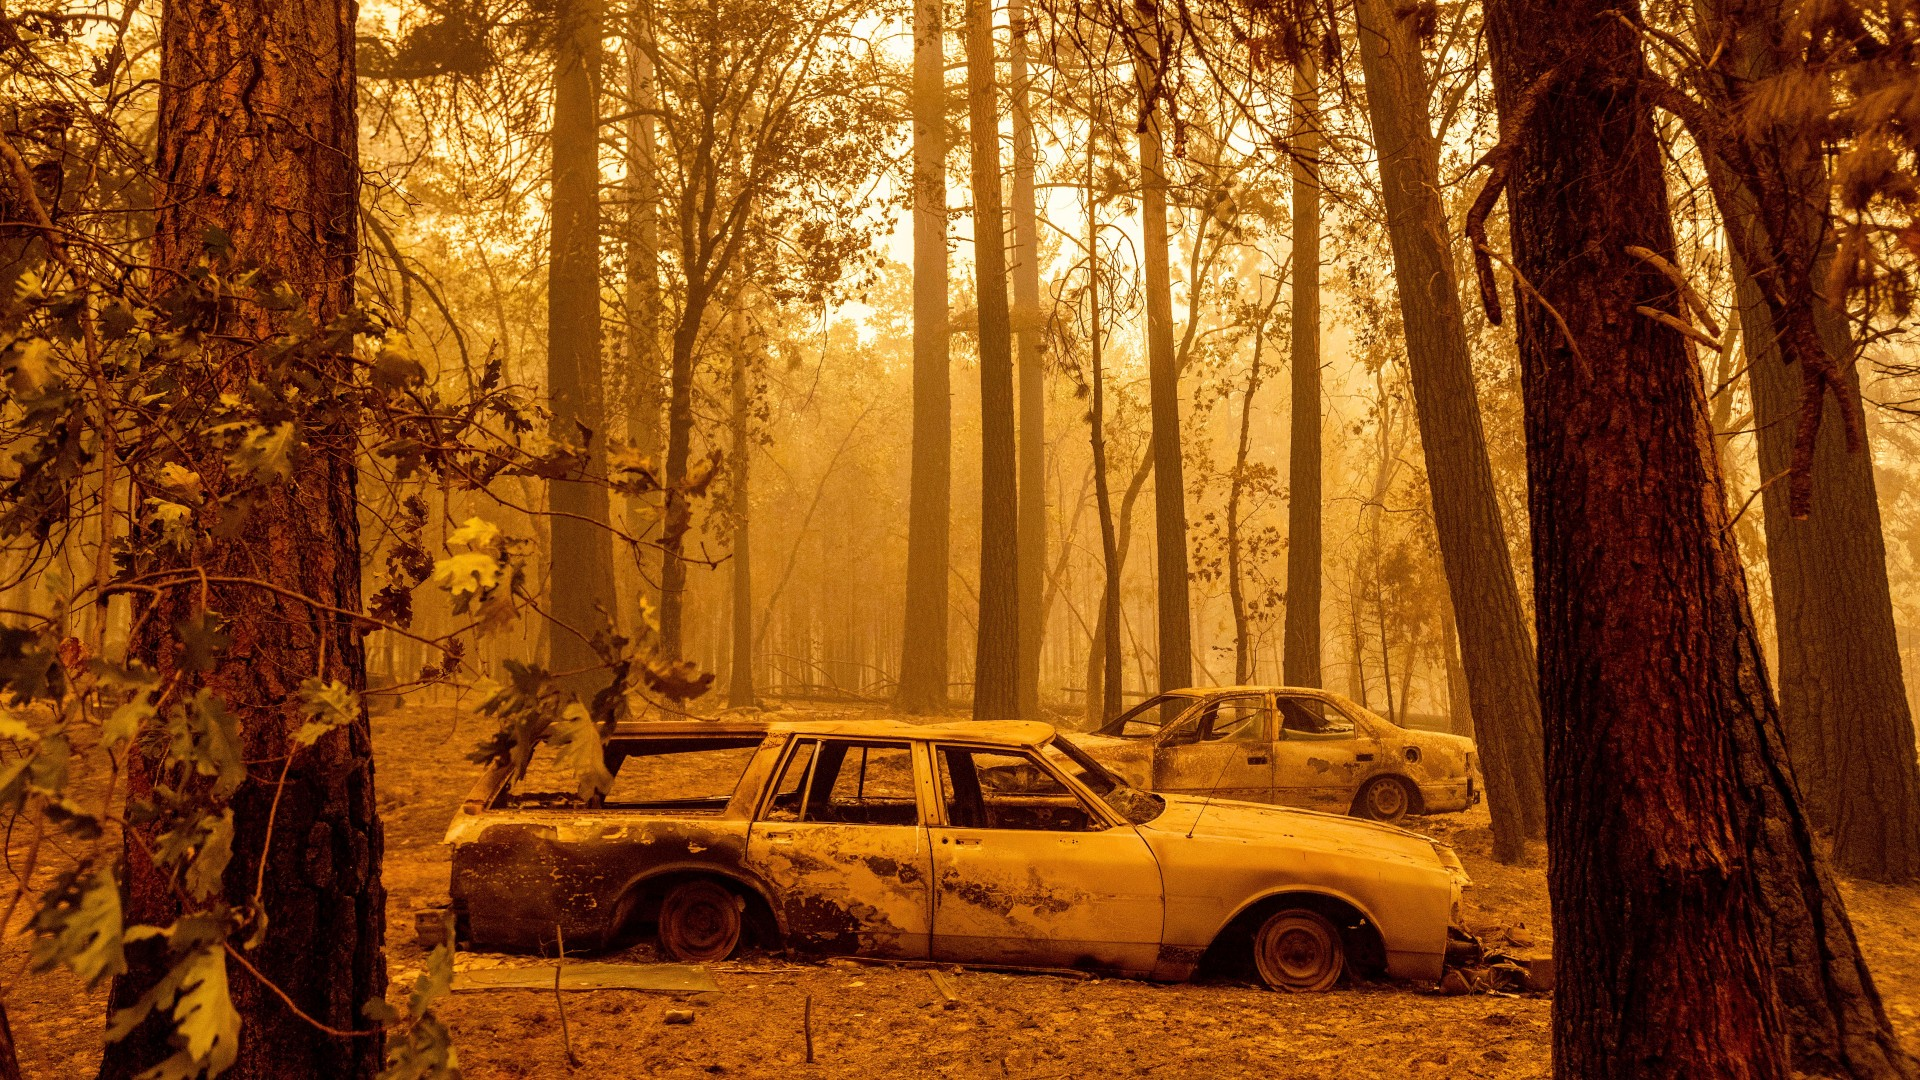 Following the Dixie Fire, scorched cars are seen in a clearing in the Indian Falls community of Plumas County, Calif., on Sunday, July 25, 2021. (AP Photo/Noah Berger)